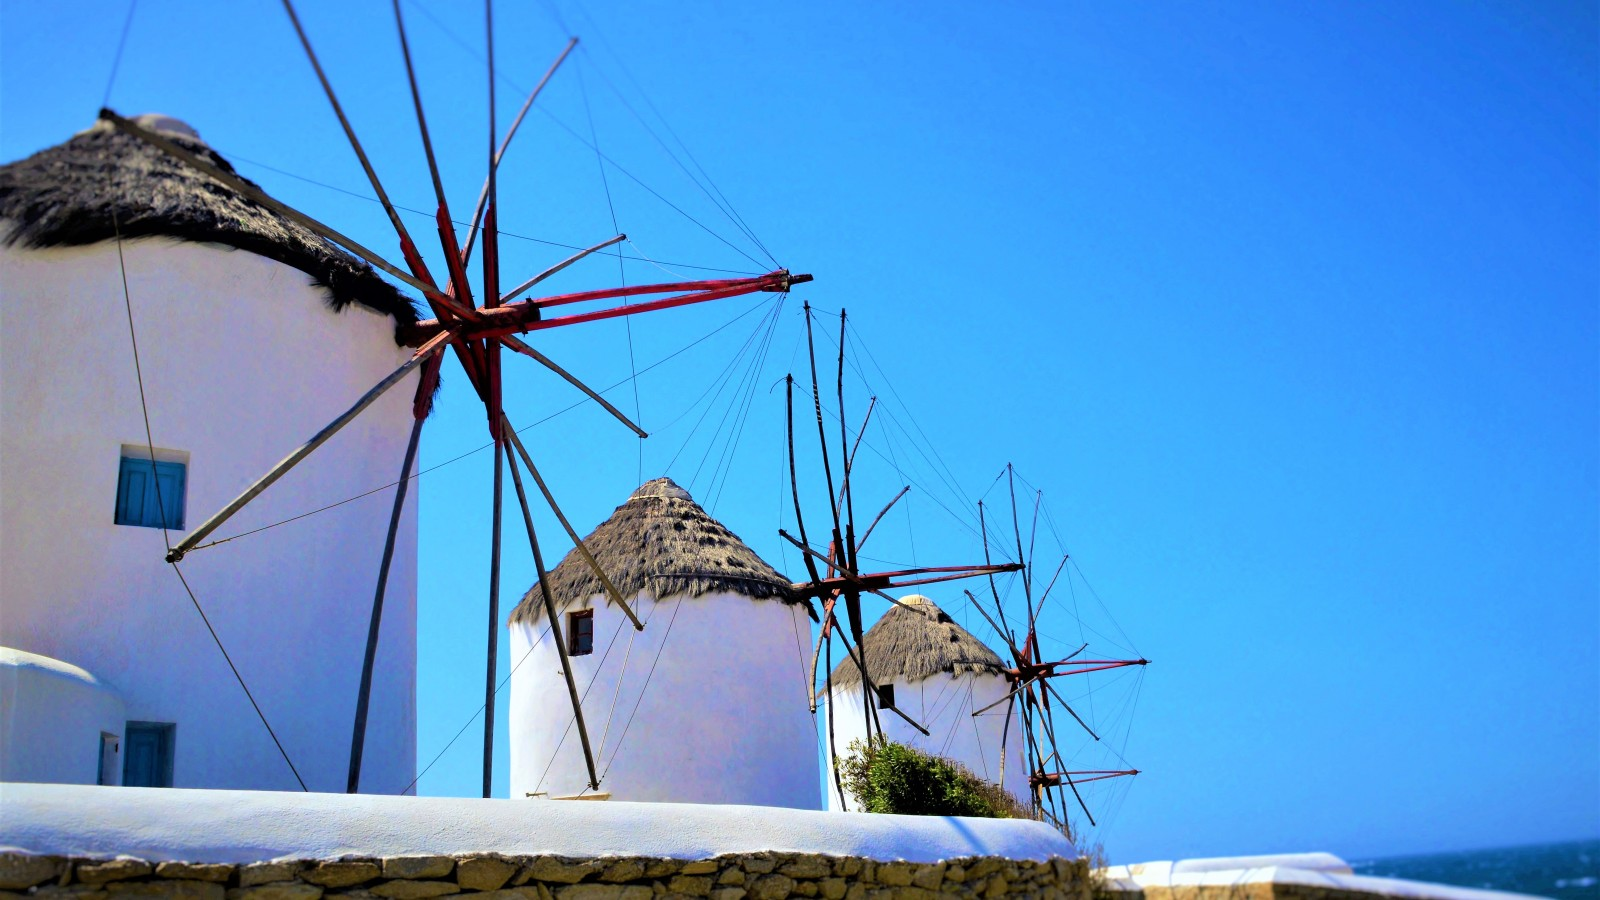 Windswept and luxurious, the Cyclades Island of Mykonos is one of the most stylish in the Mediterranean